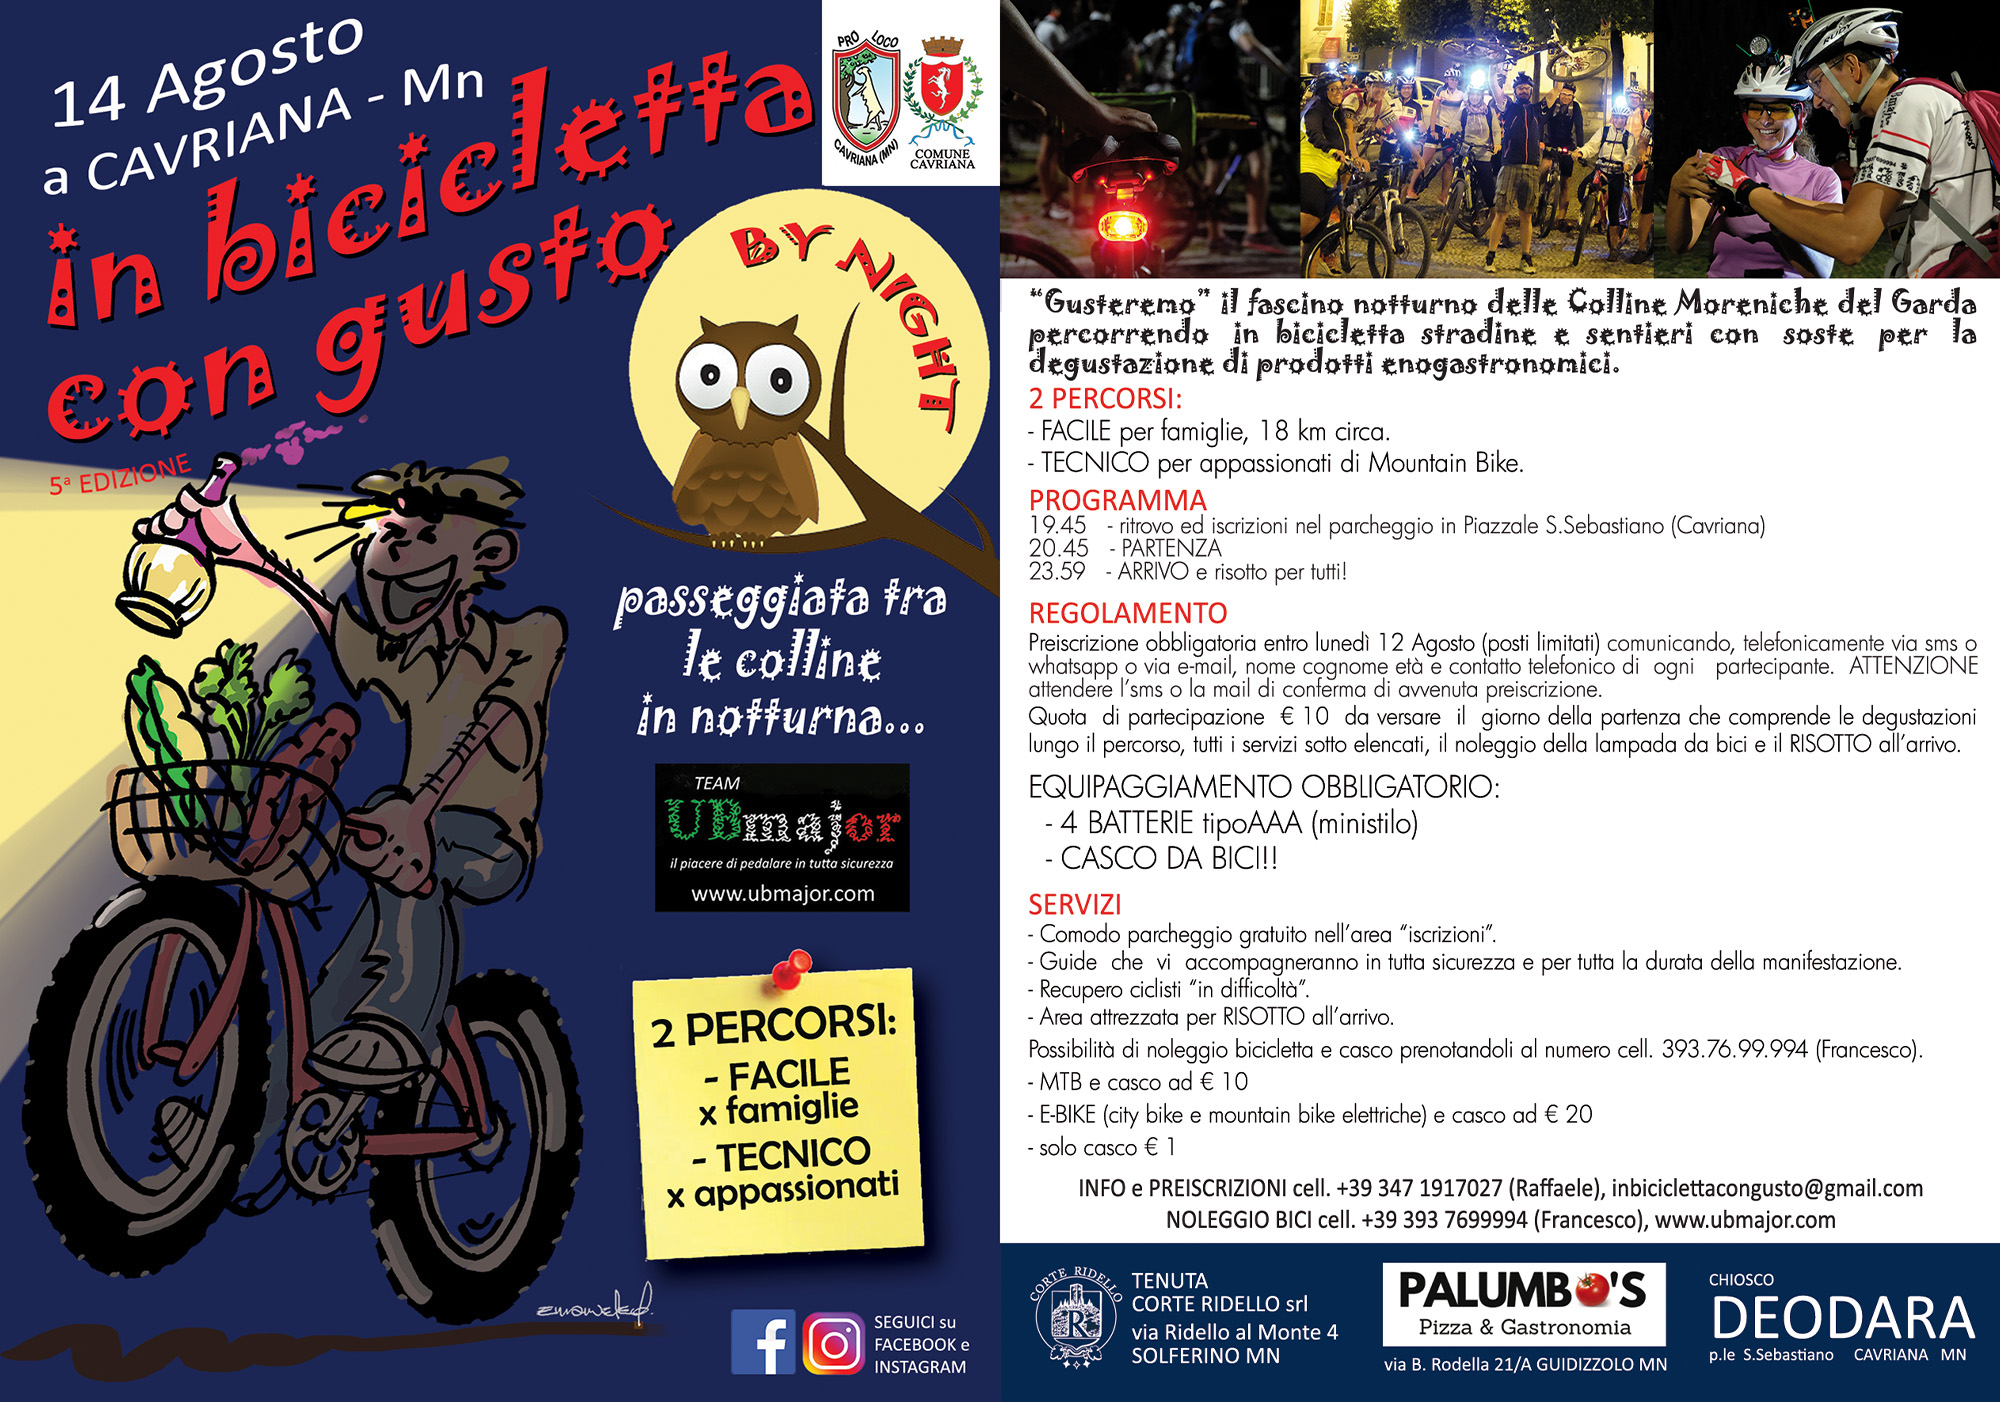 in bicicletta con gusto by night 2019